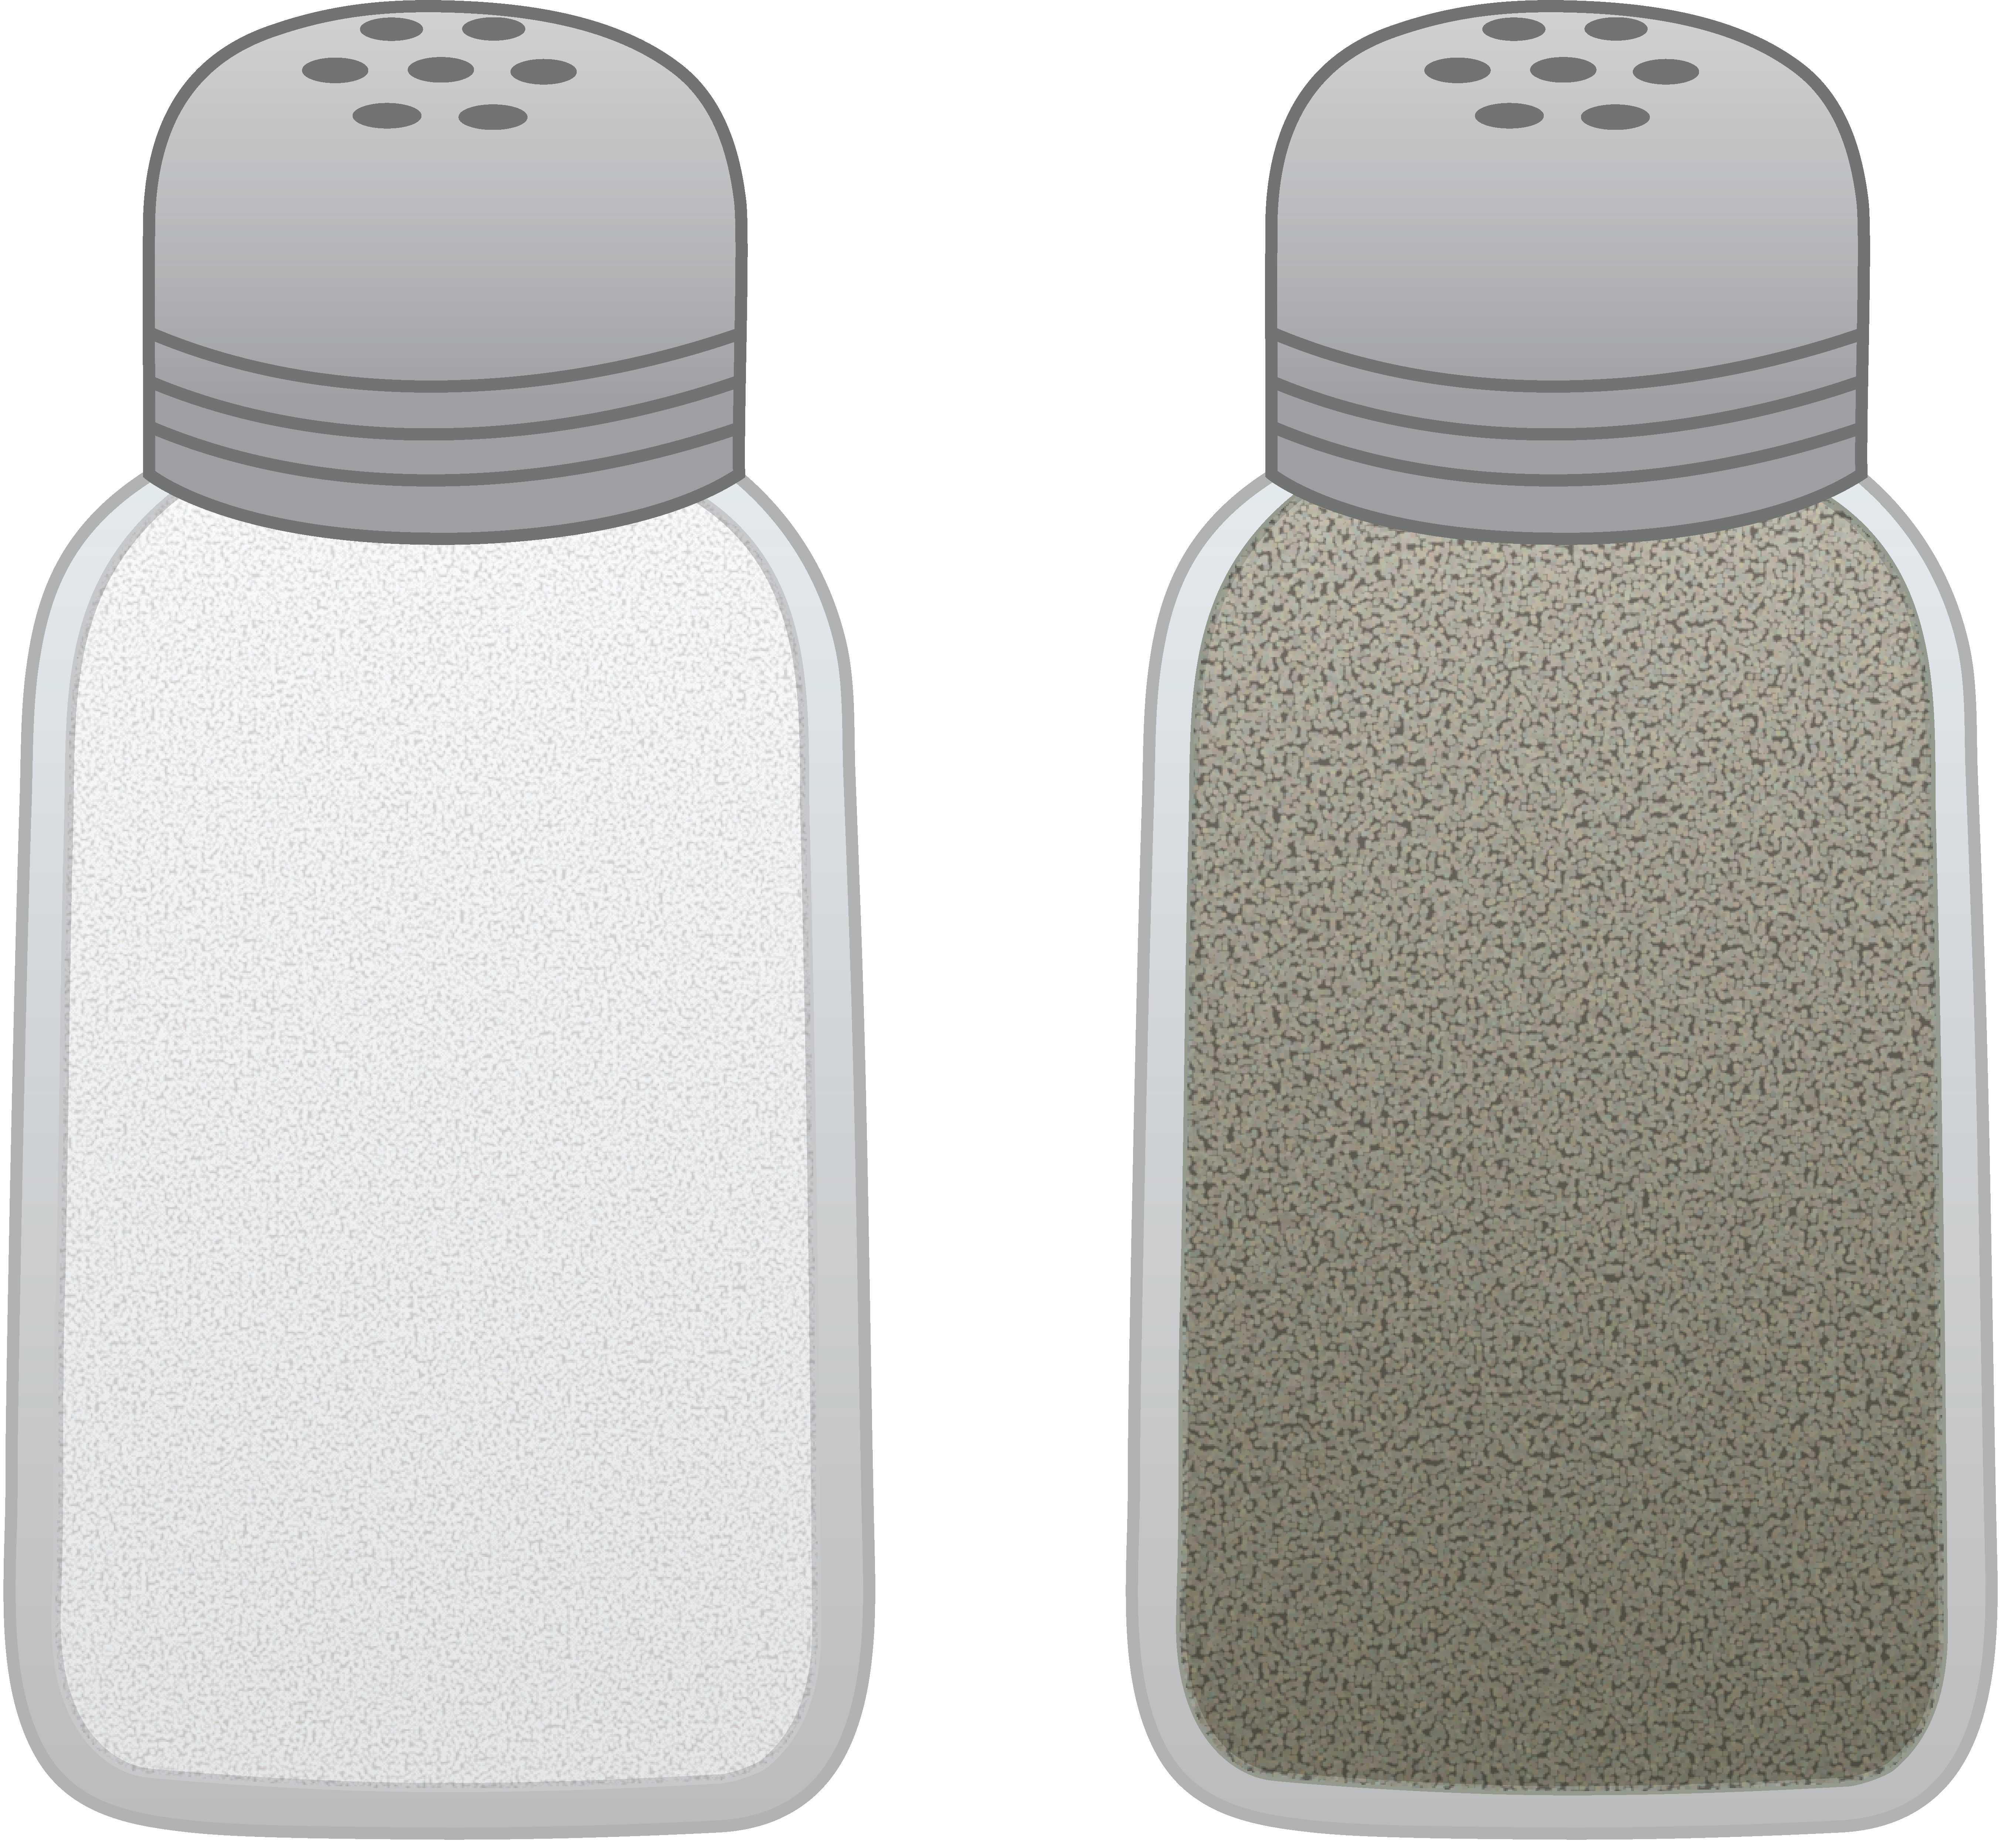 Salt clipart spice shaker. And pepper shakers free